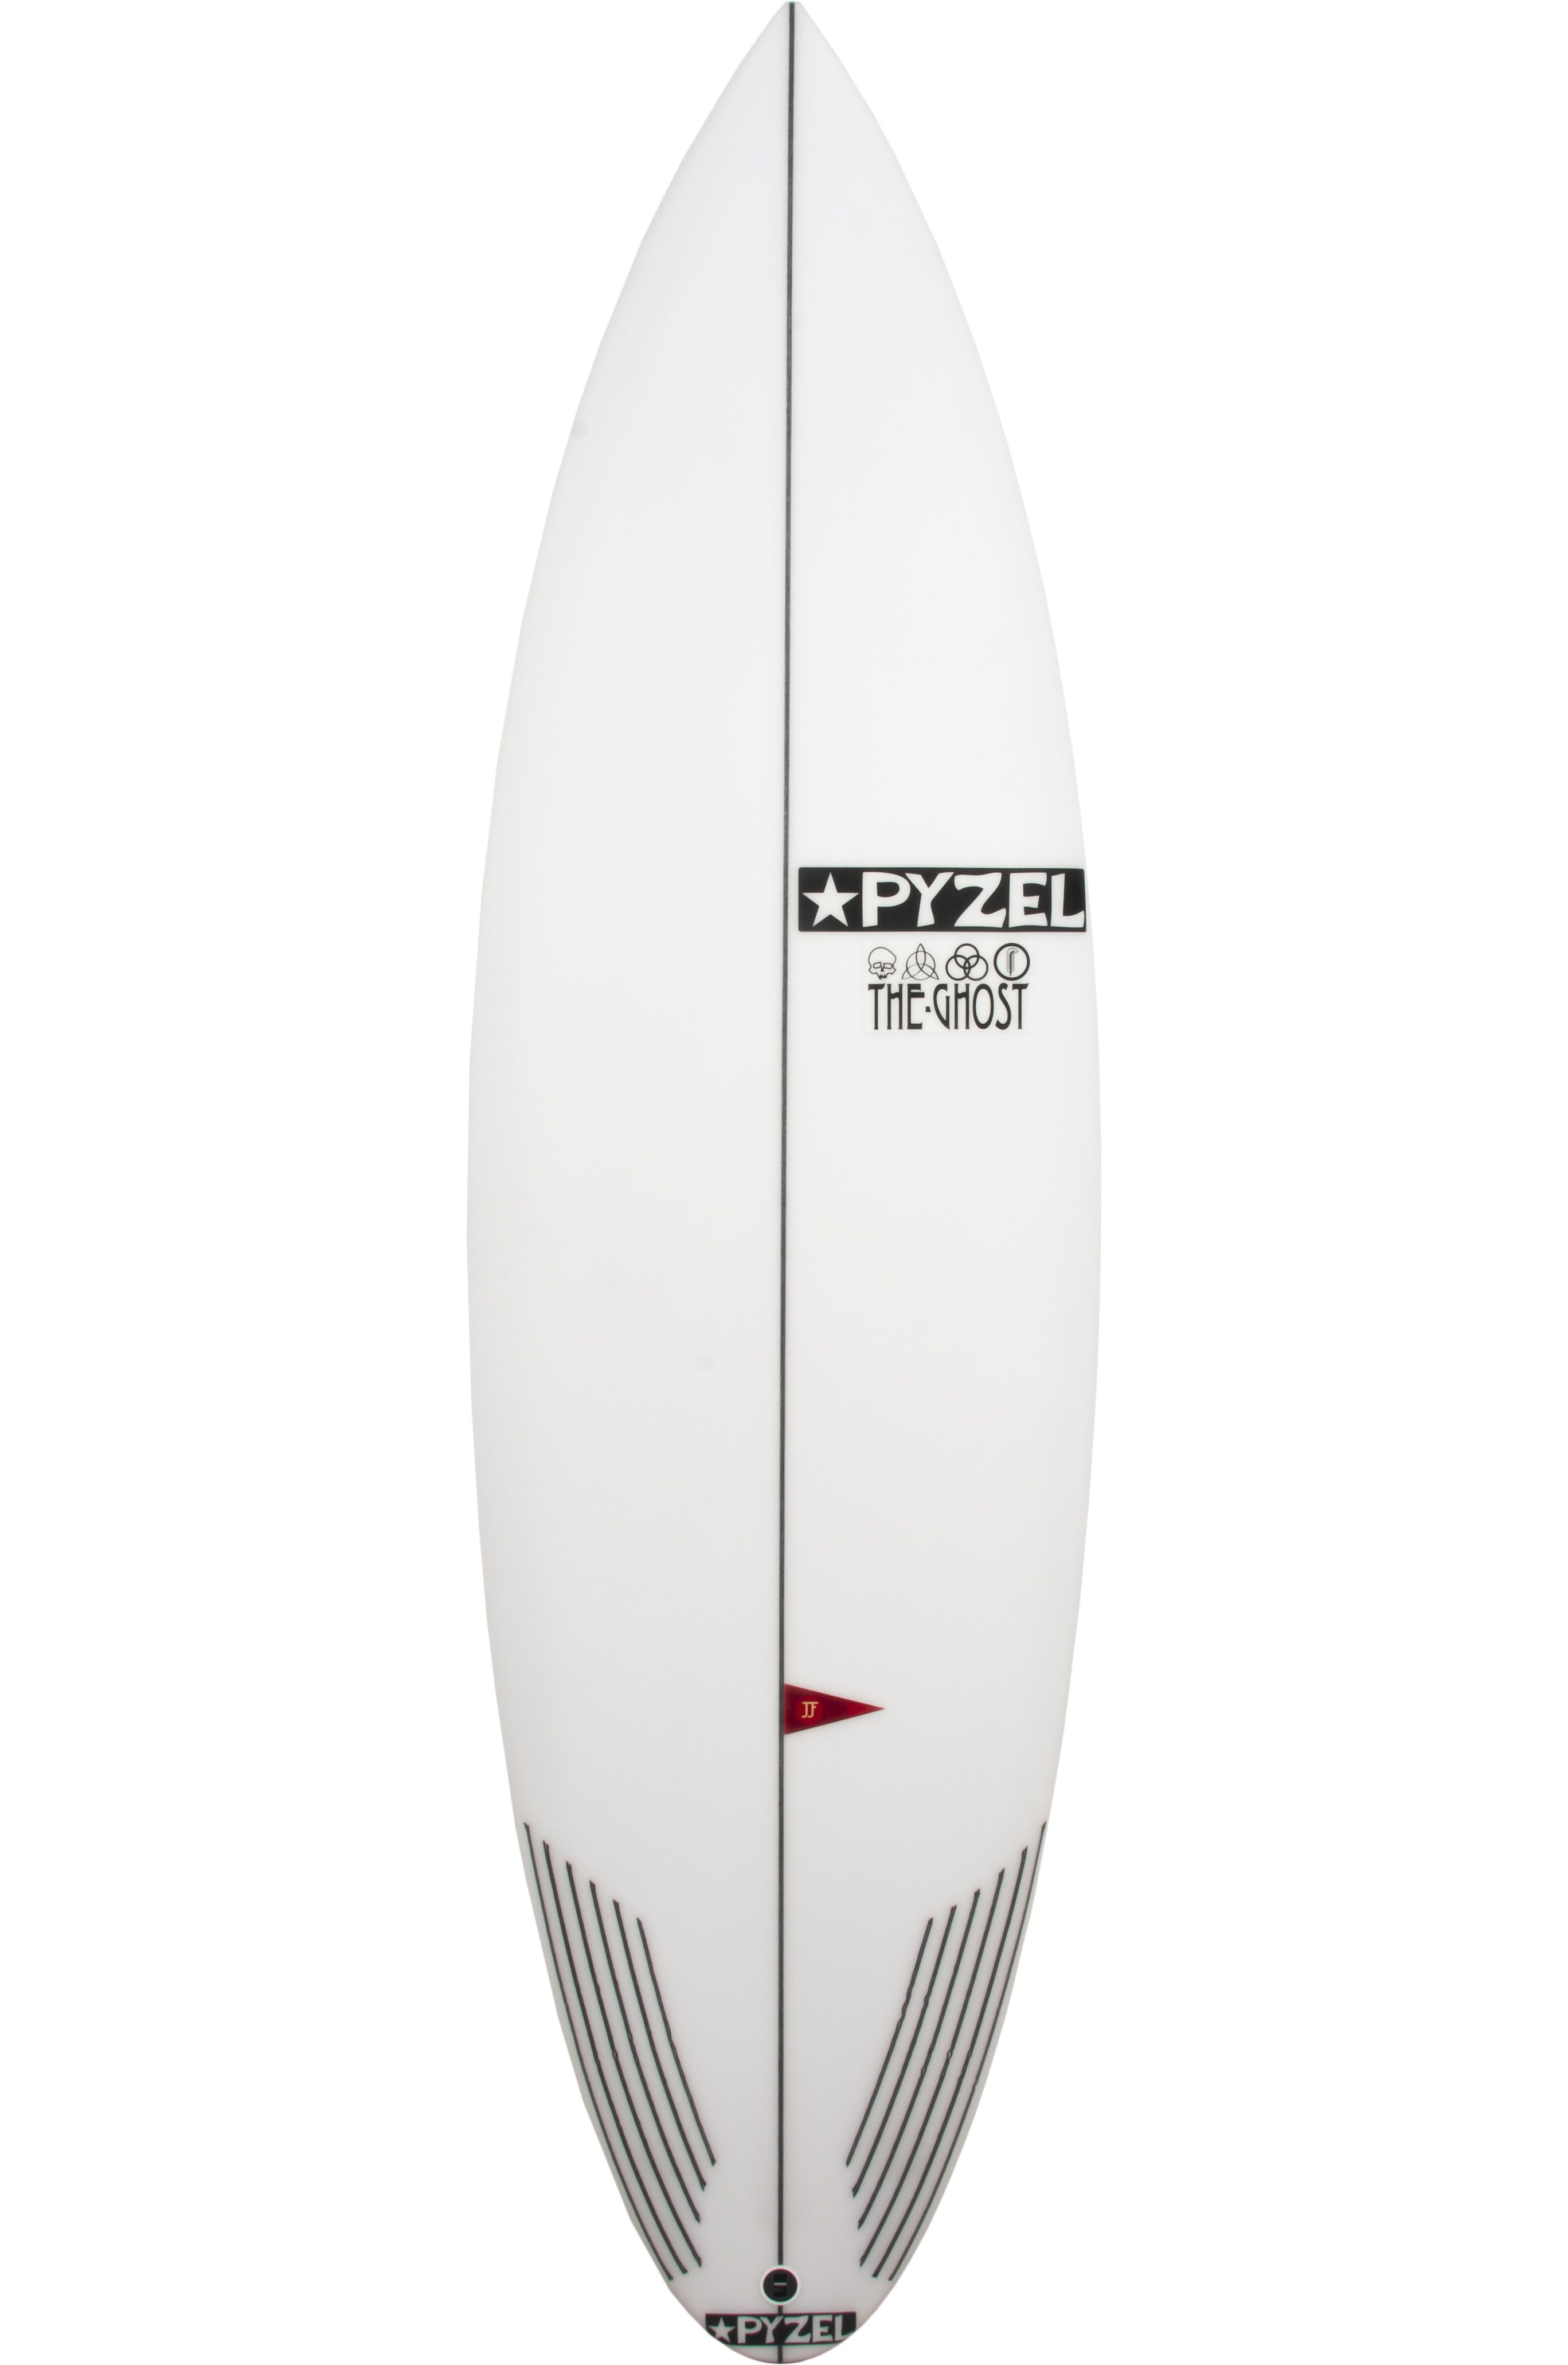 Prancha Surf Pyzel 5'10 GHOST Round Pin Tail - White FCS II Multisystem 5ft10